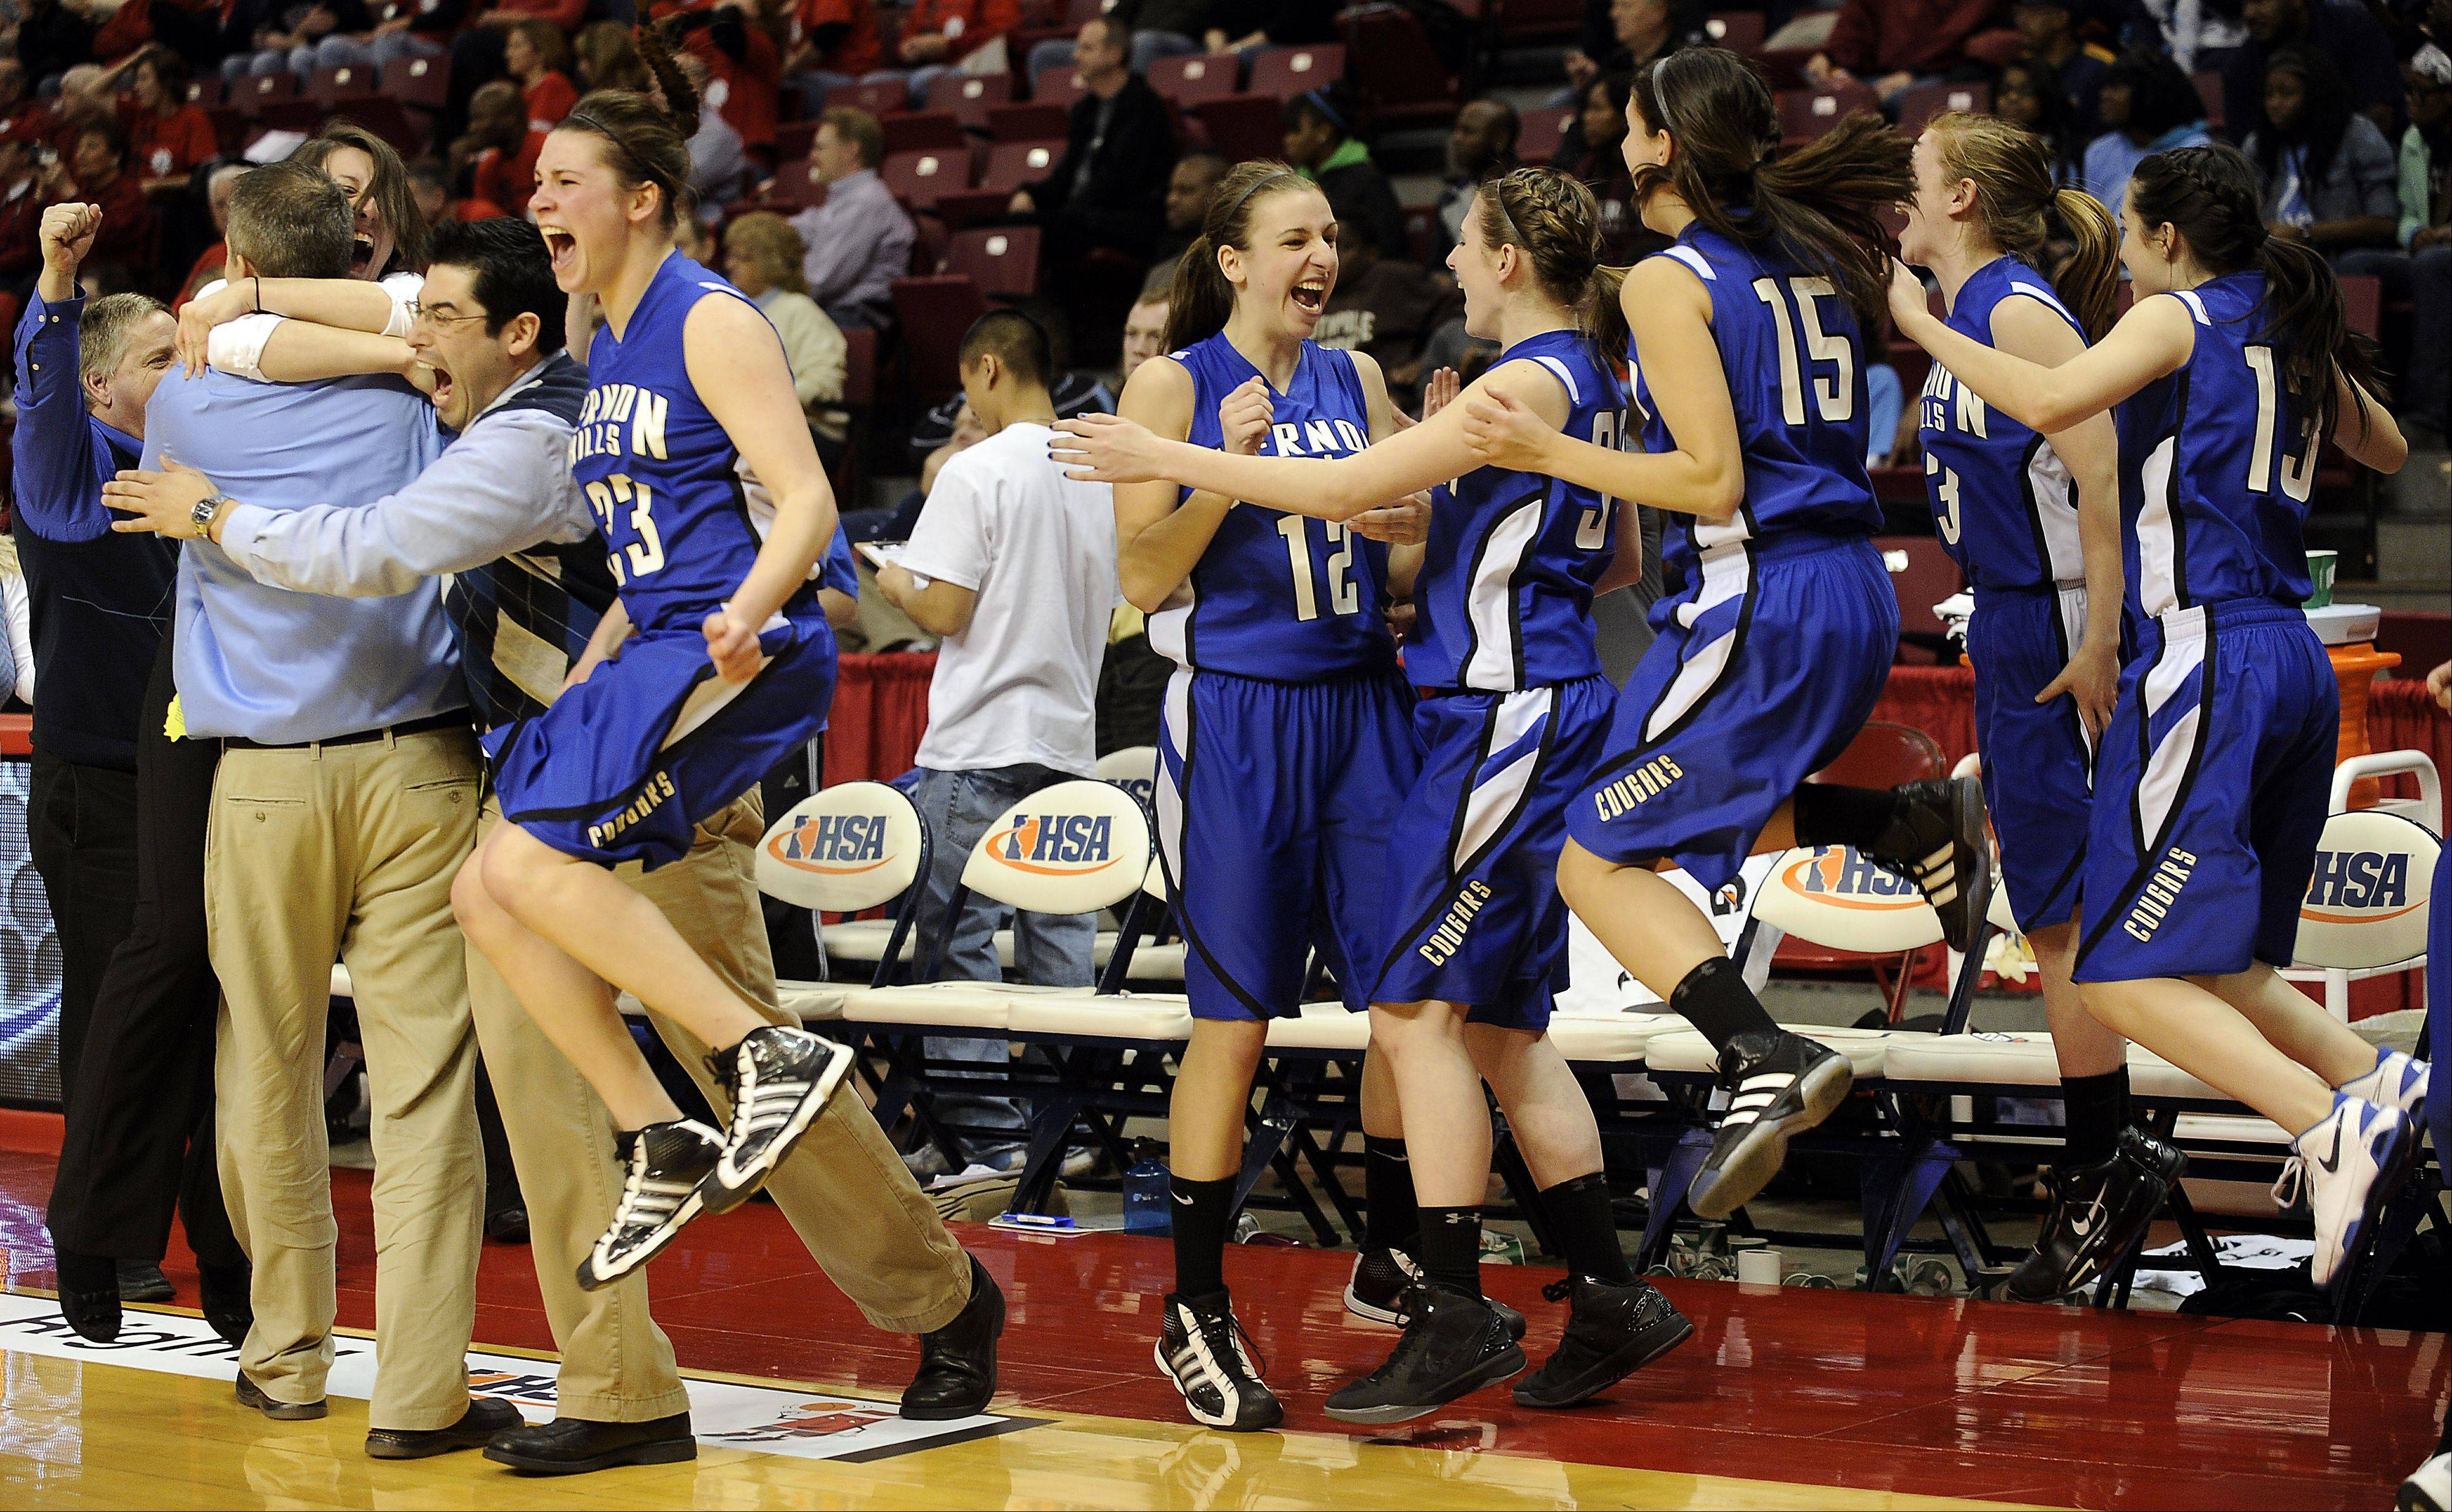 Vernon Hills' Brie Bahlmann leads the bench in their victory over Springfield in the fourth quarter of play in the 2012 IHSA Class 3A girls basketball tournament in Normal, Illinois on Friday.